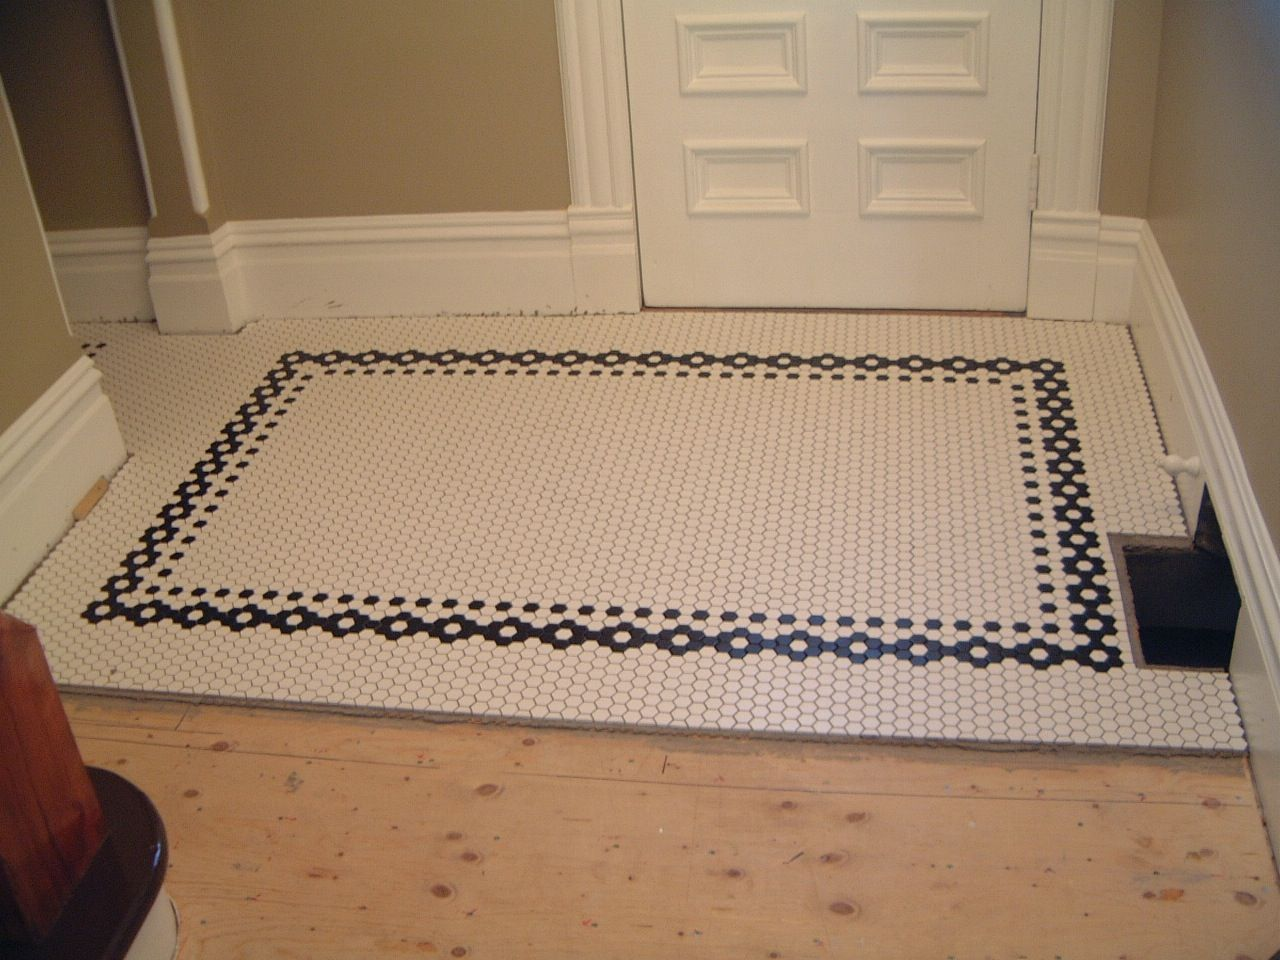 1000+ ideas about ile Floor Patterns on Pinterest Porcelain ... - ^